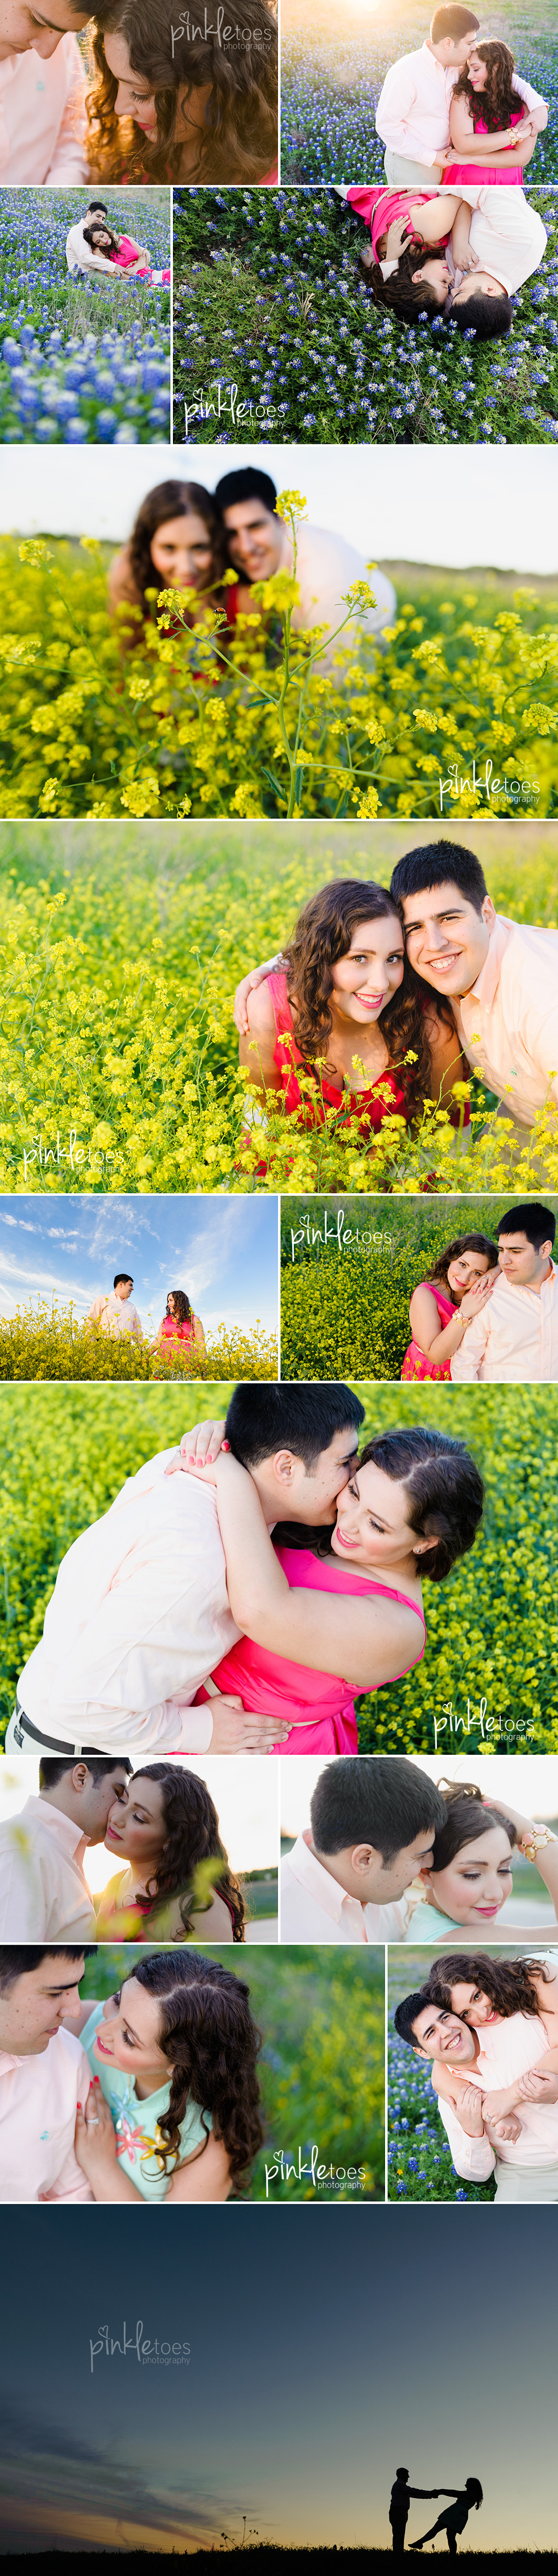 cm-austin-couples-engagement-bridal-wildflower-bluebonnet-photographer